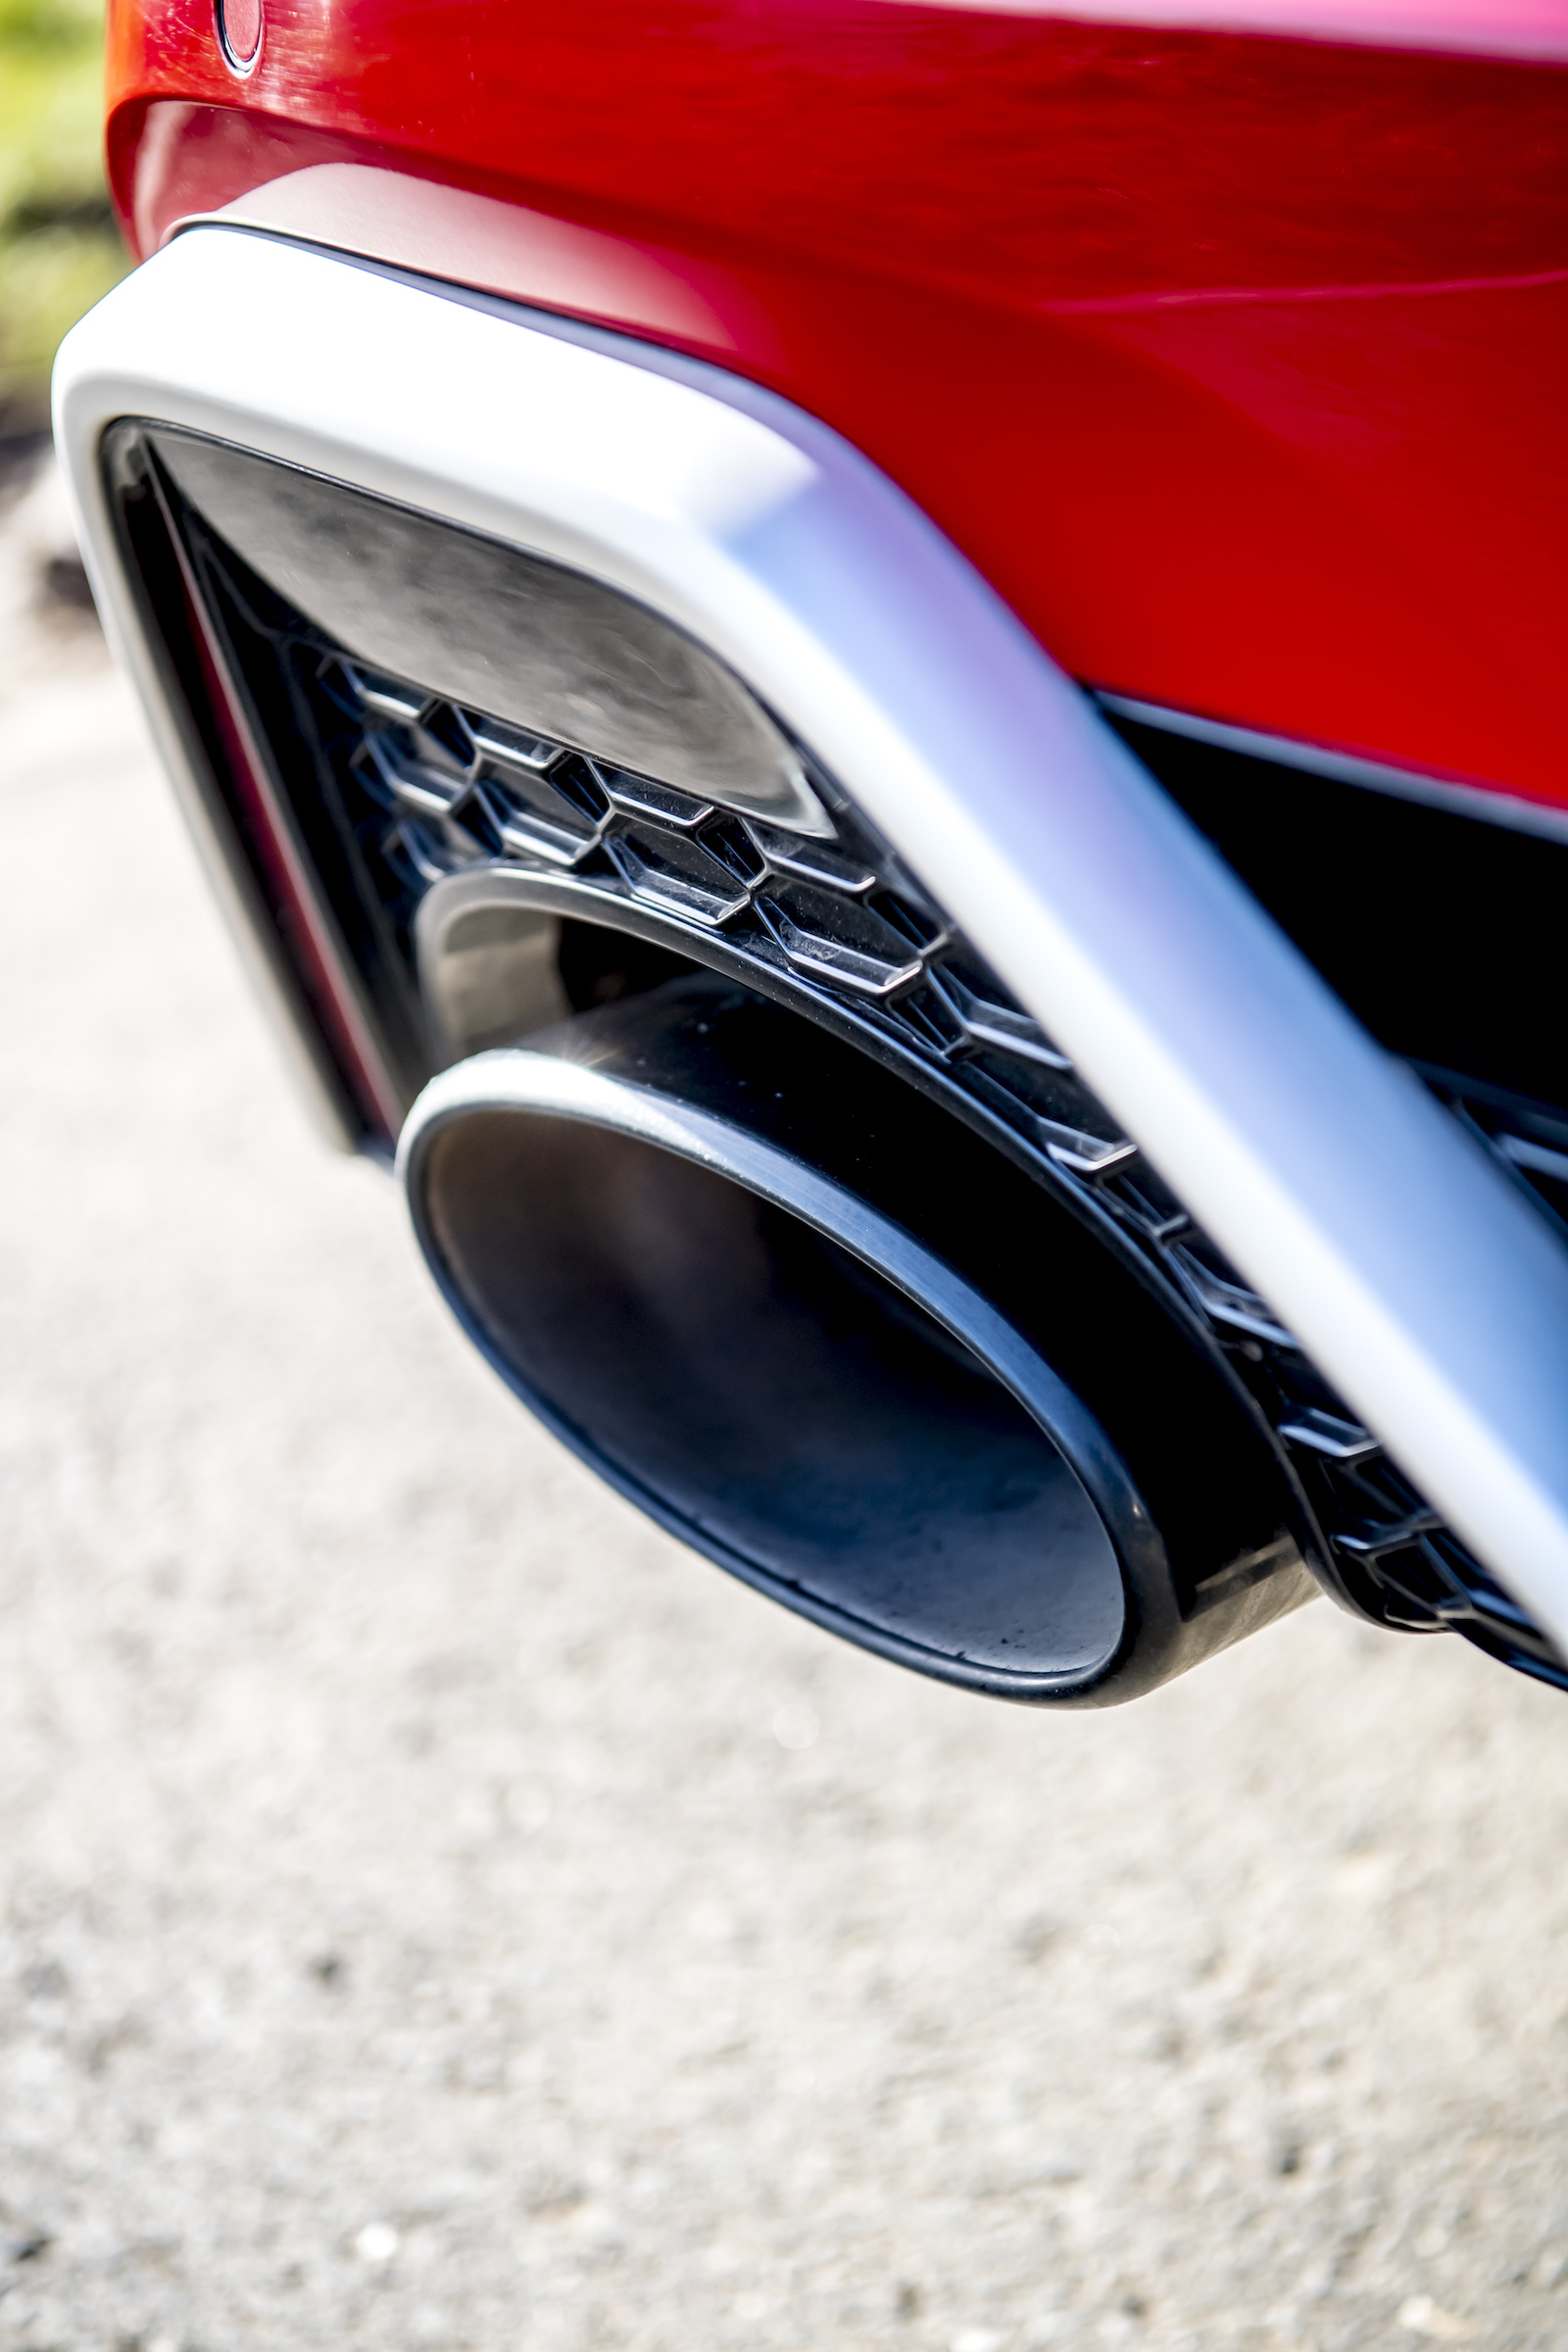 Audi RS6 rear exhaust tip detail